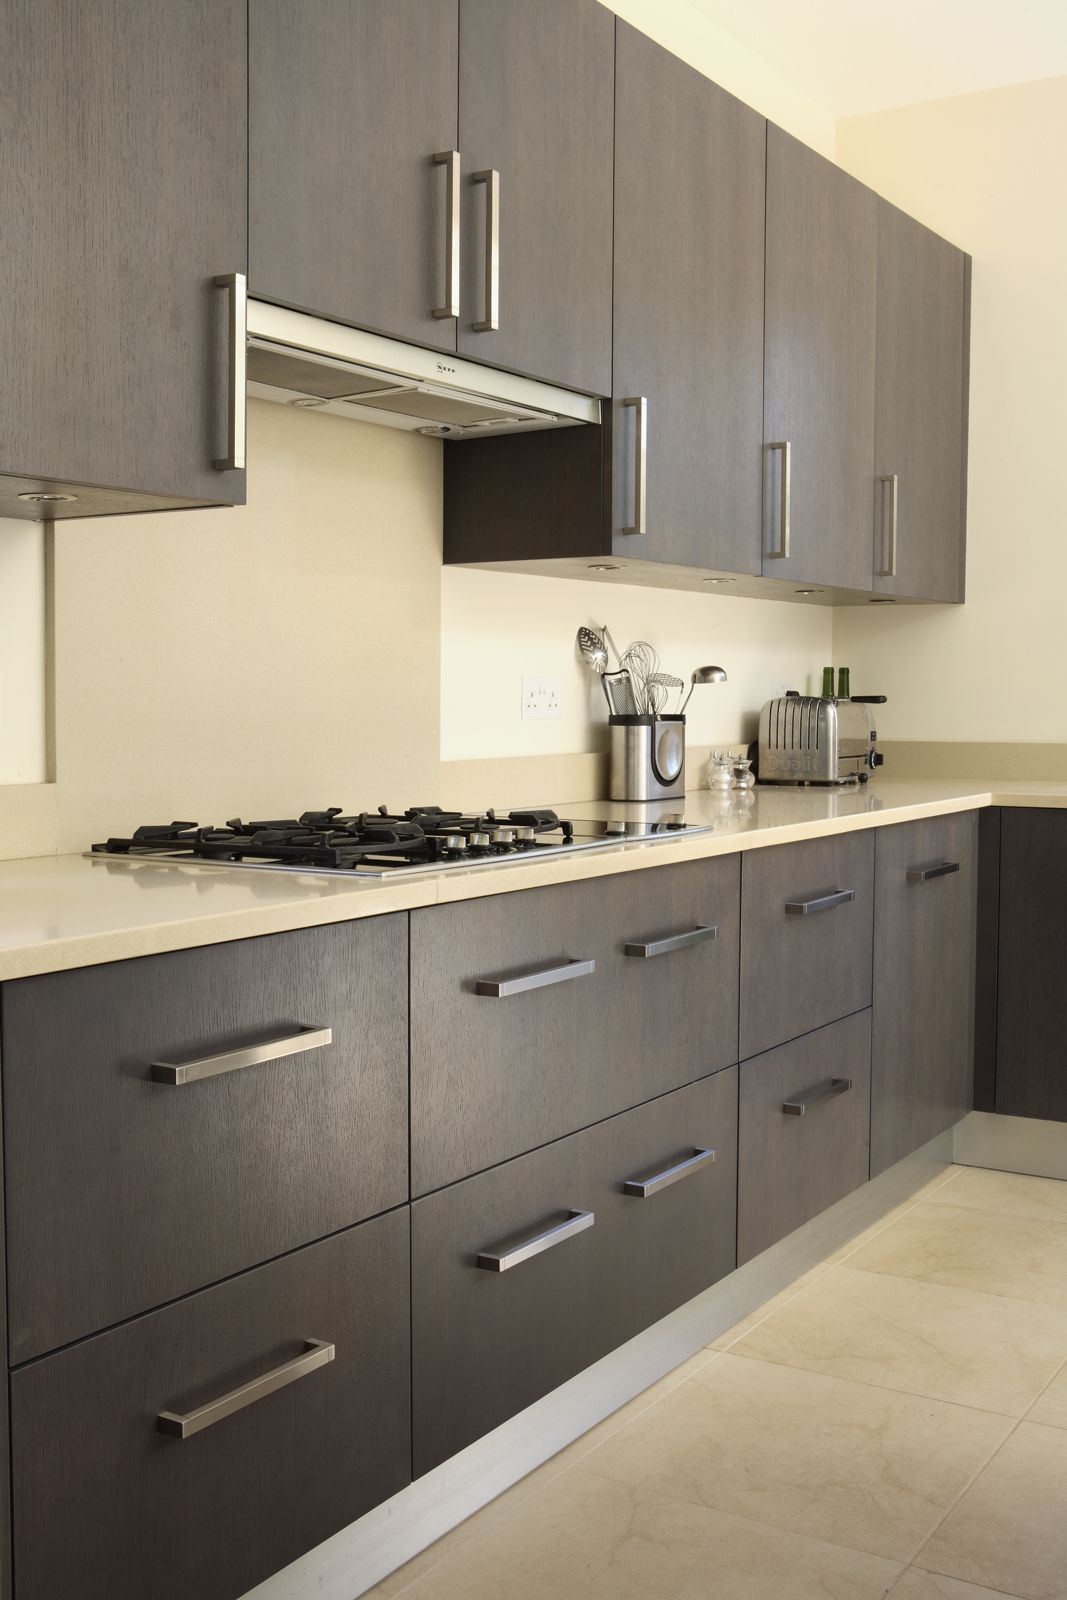 Silestone Crema Minerva Cream Quartz Kitchen Worktops Against Grey Kitchen Units With Upsta